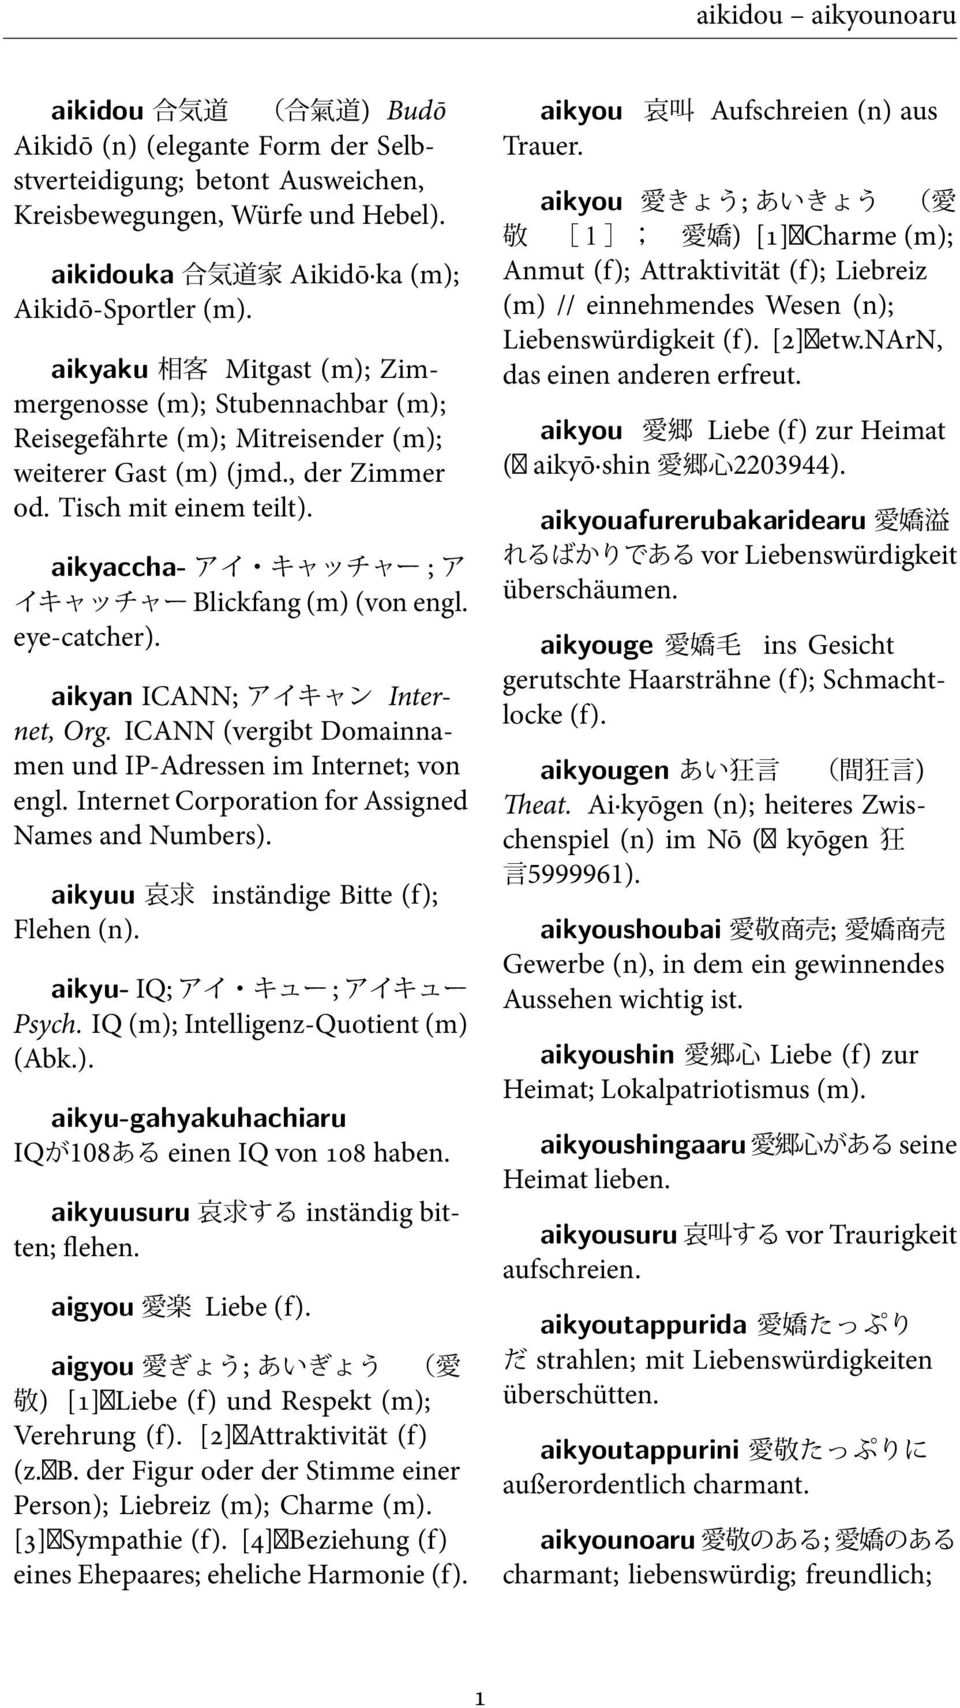 aikyaccha- ; Blickfang (m) (von engl. eye-catcher). aikyan ICANN; Internet, Org. ICANN (vergibt Domainnamen und IP-Adressen im Internet; von engl. Internet Corporation for Assigned Names and Numbers).